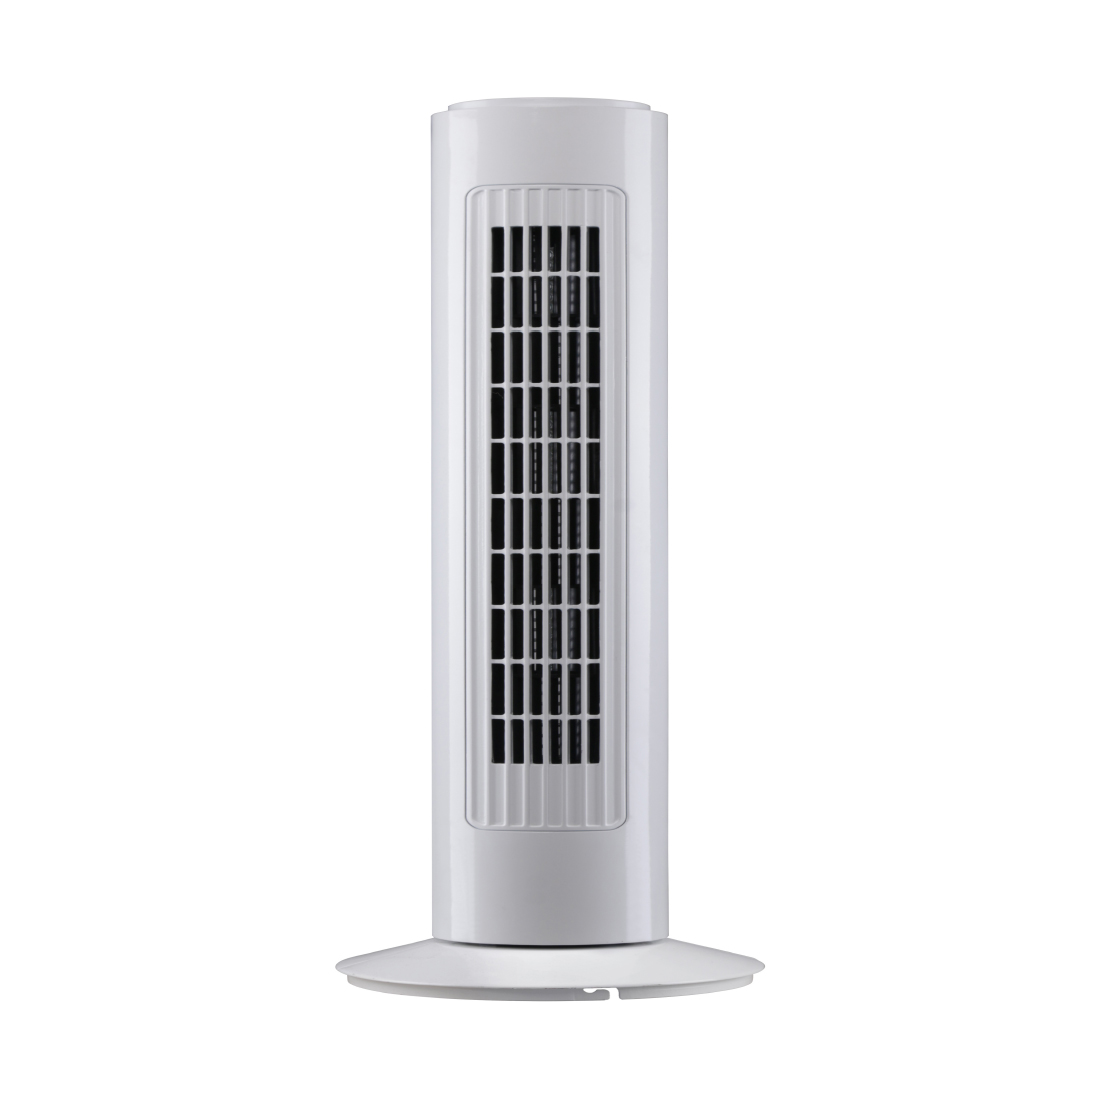 Floor Standing 5 Star Facilities Tower Fan 90deg Oscillating 3-Speed 120-Minute Timer 40 Watts H762mm White